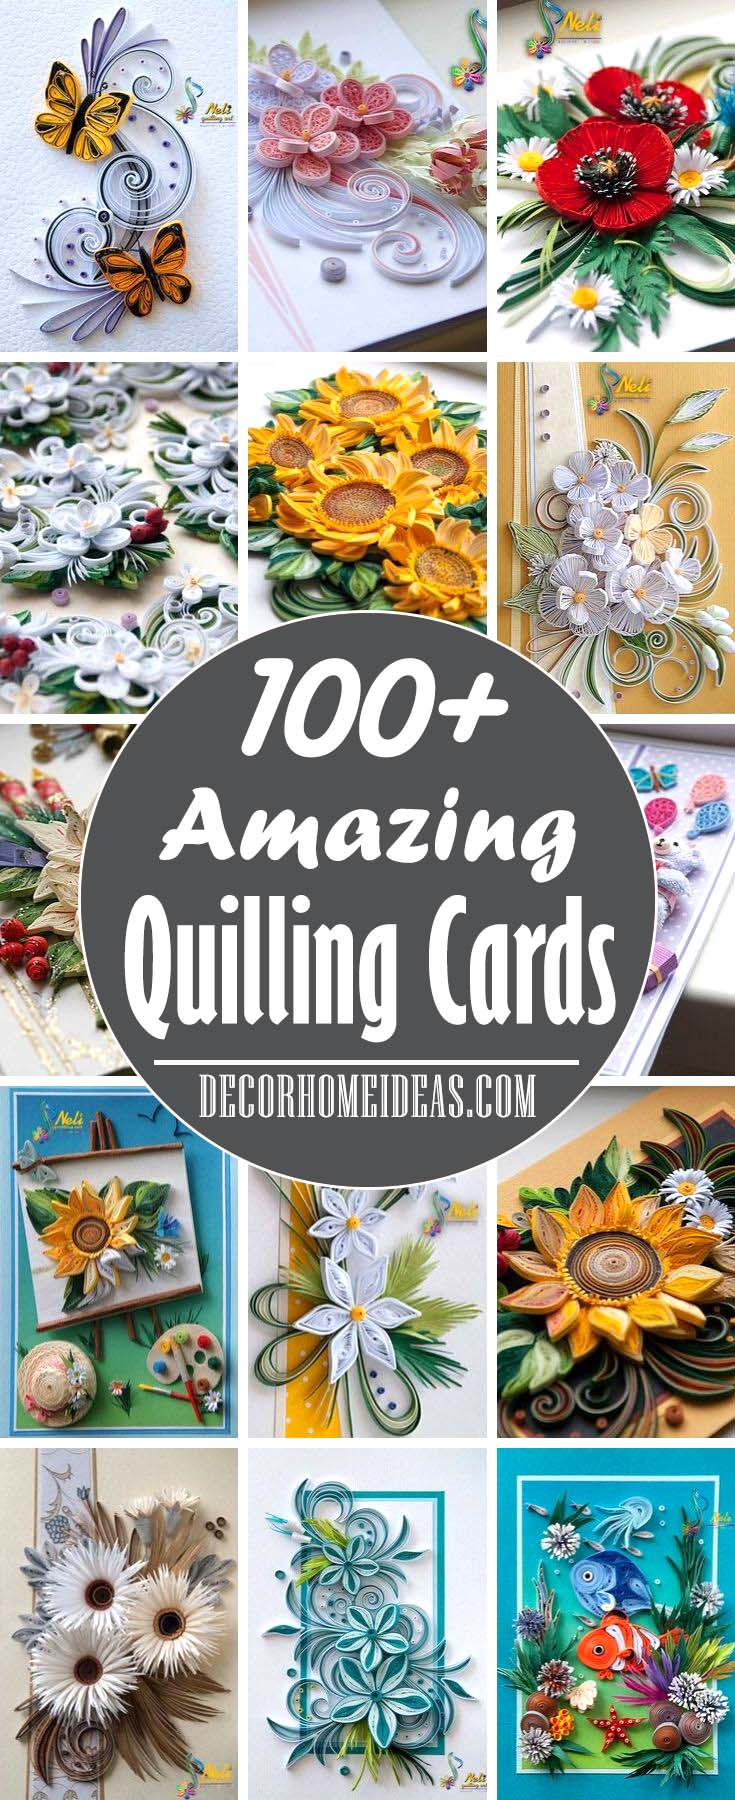 Best Paper Quilling Cards, Ideas and Designs #quilling #cards #decorhomeideas